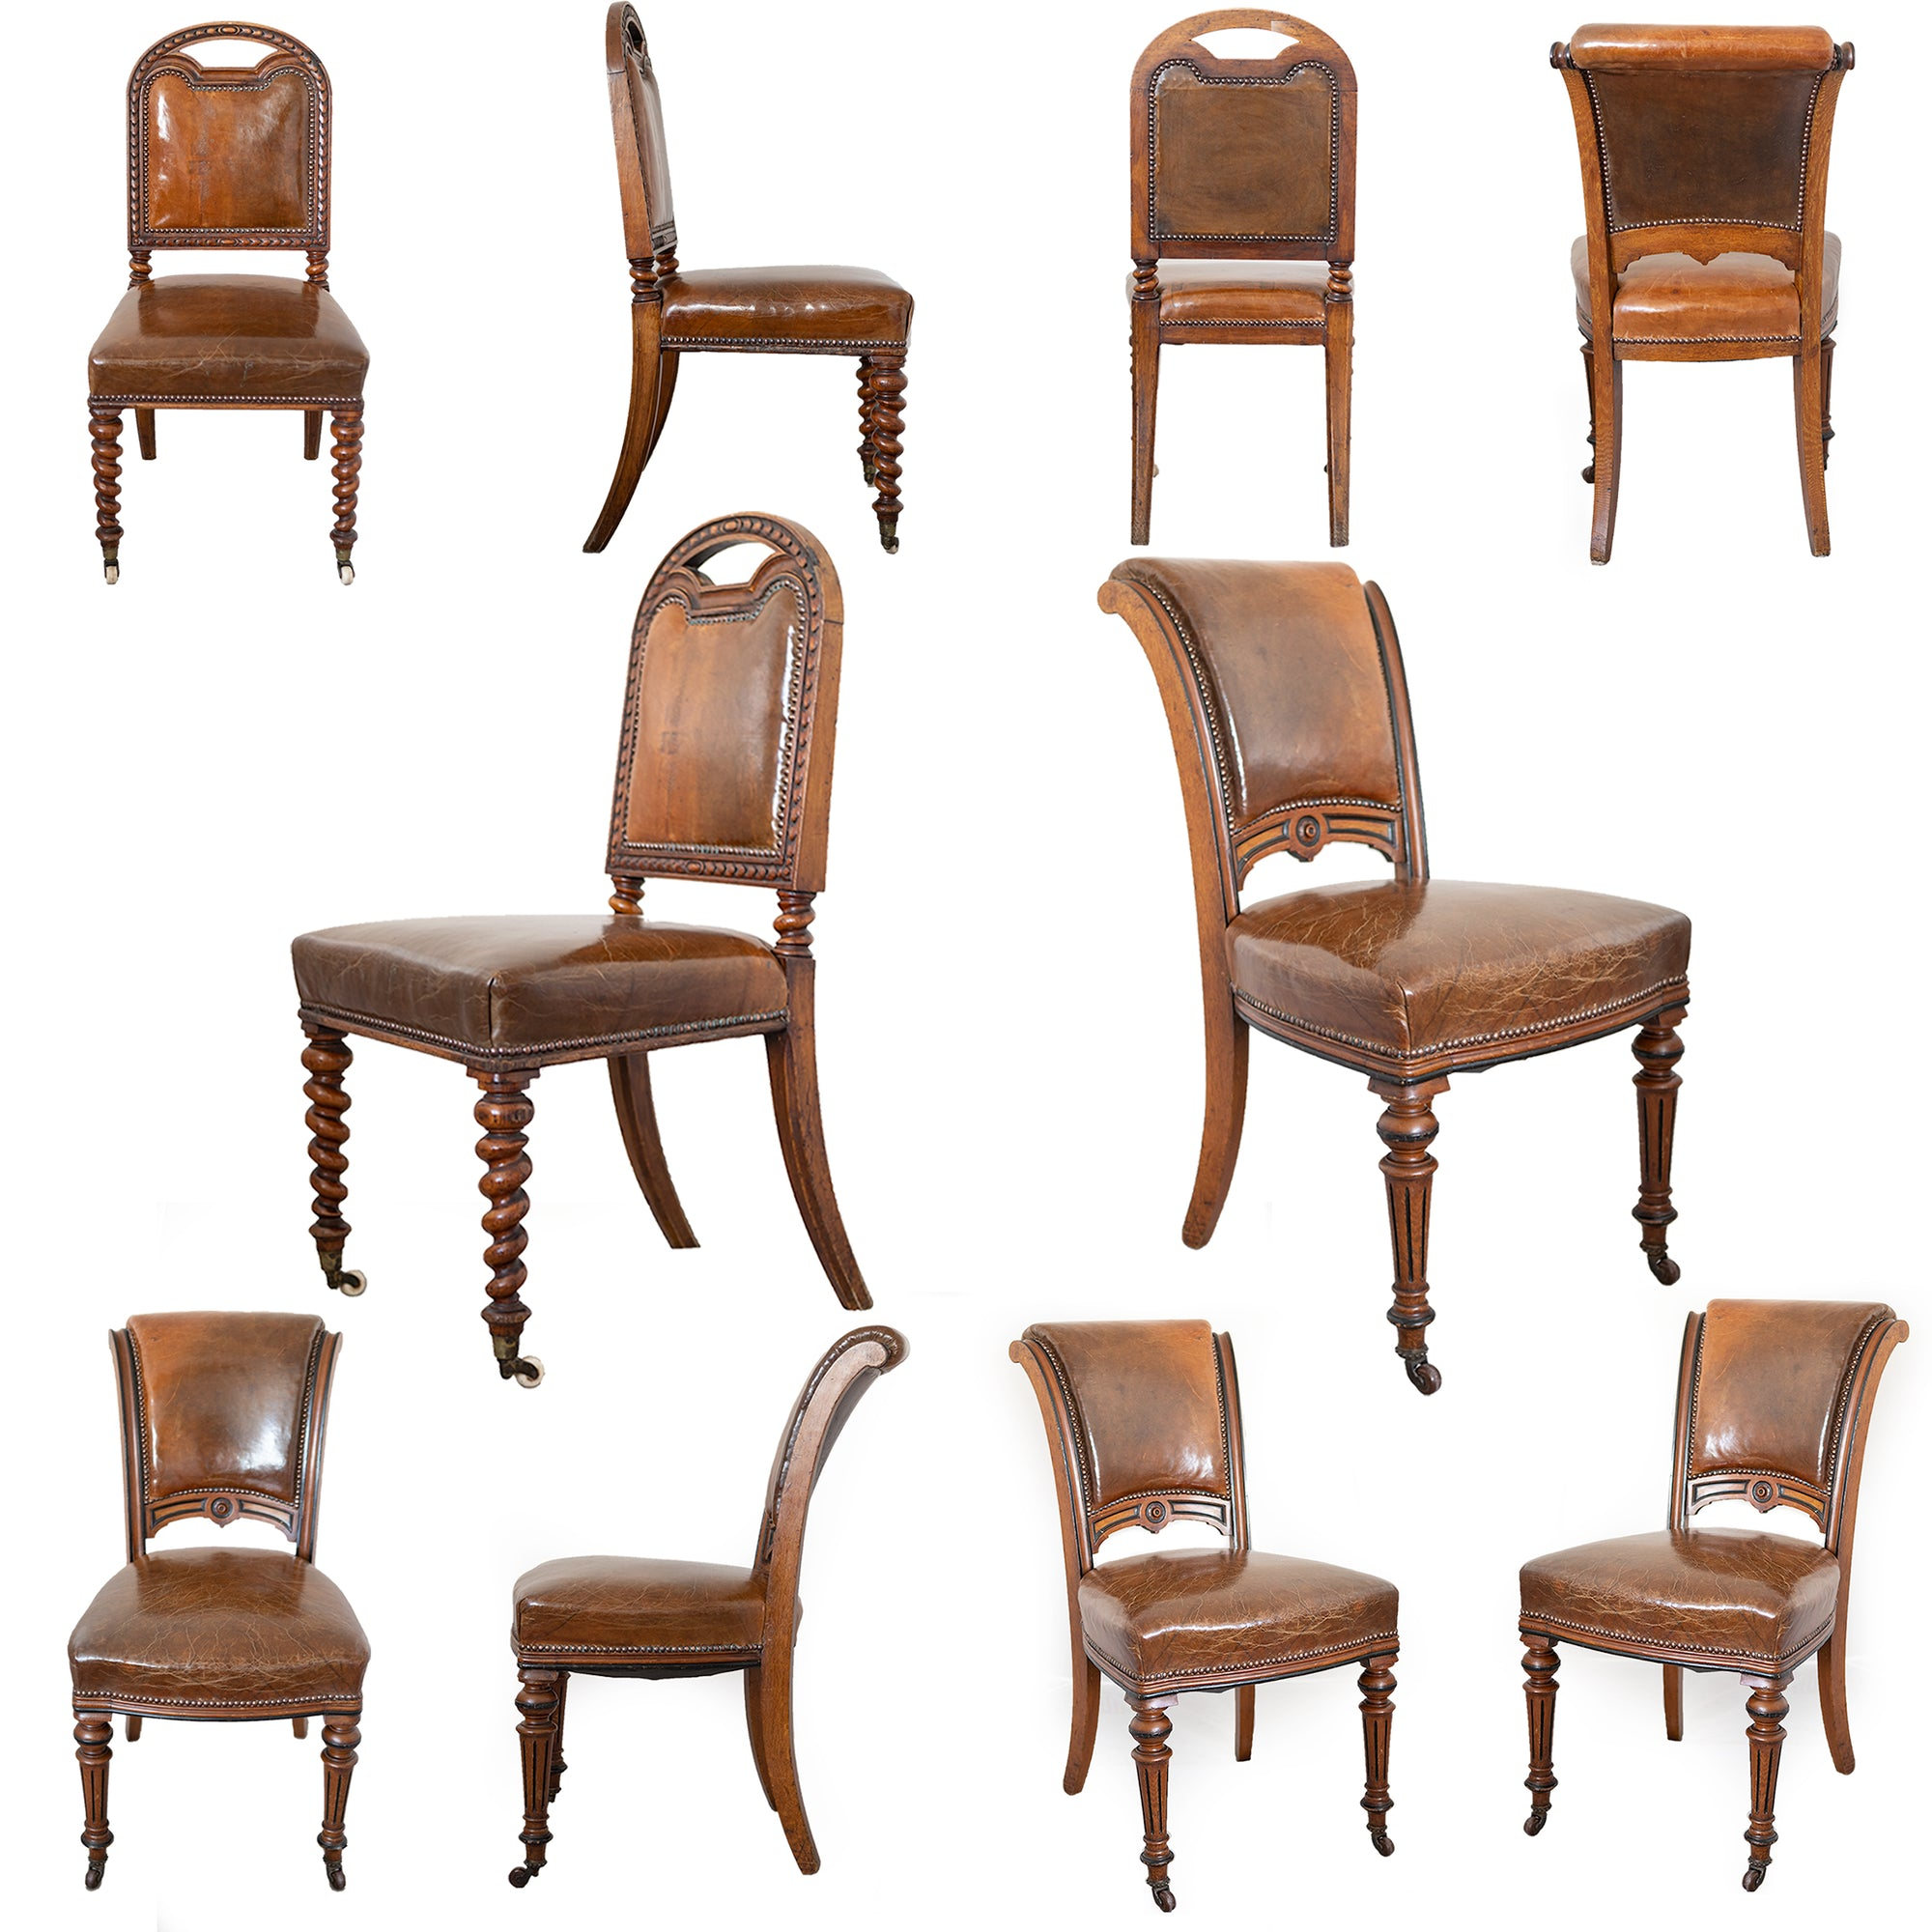 Antique Victorian Oak & Leather Dining Chairs (set of 10)